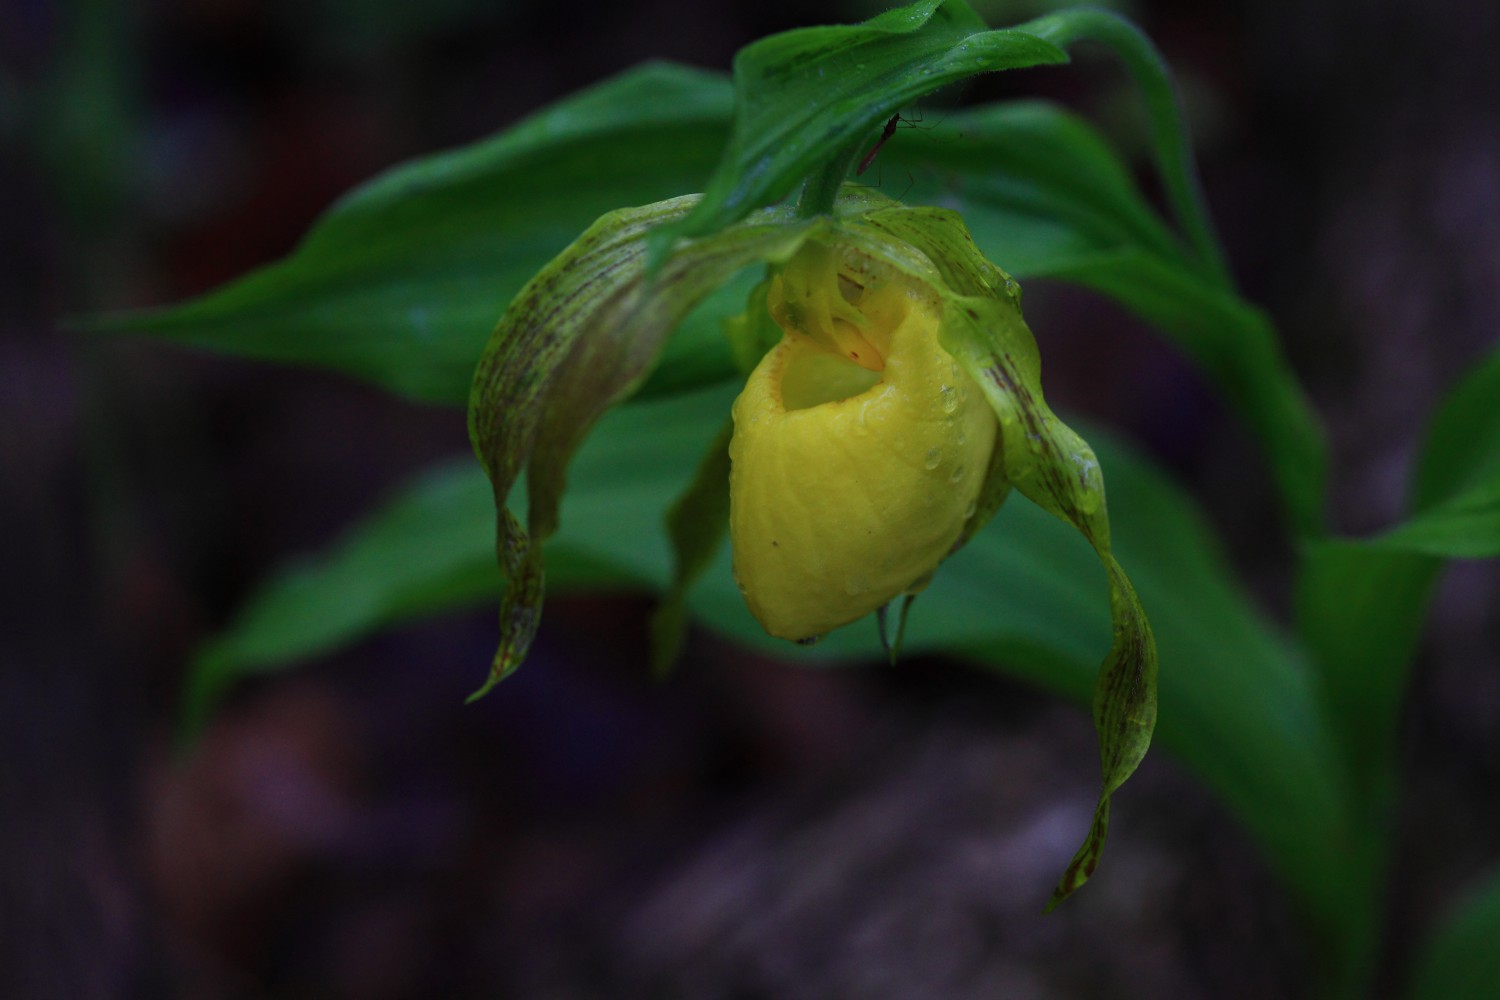 cypripedium pubescens author szulecki joshua